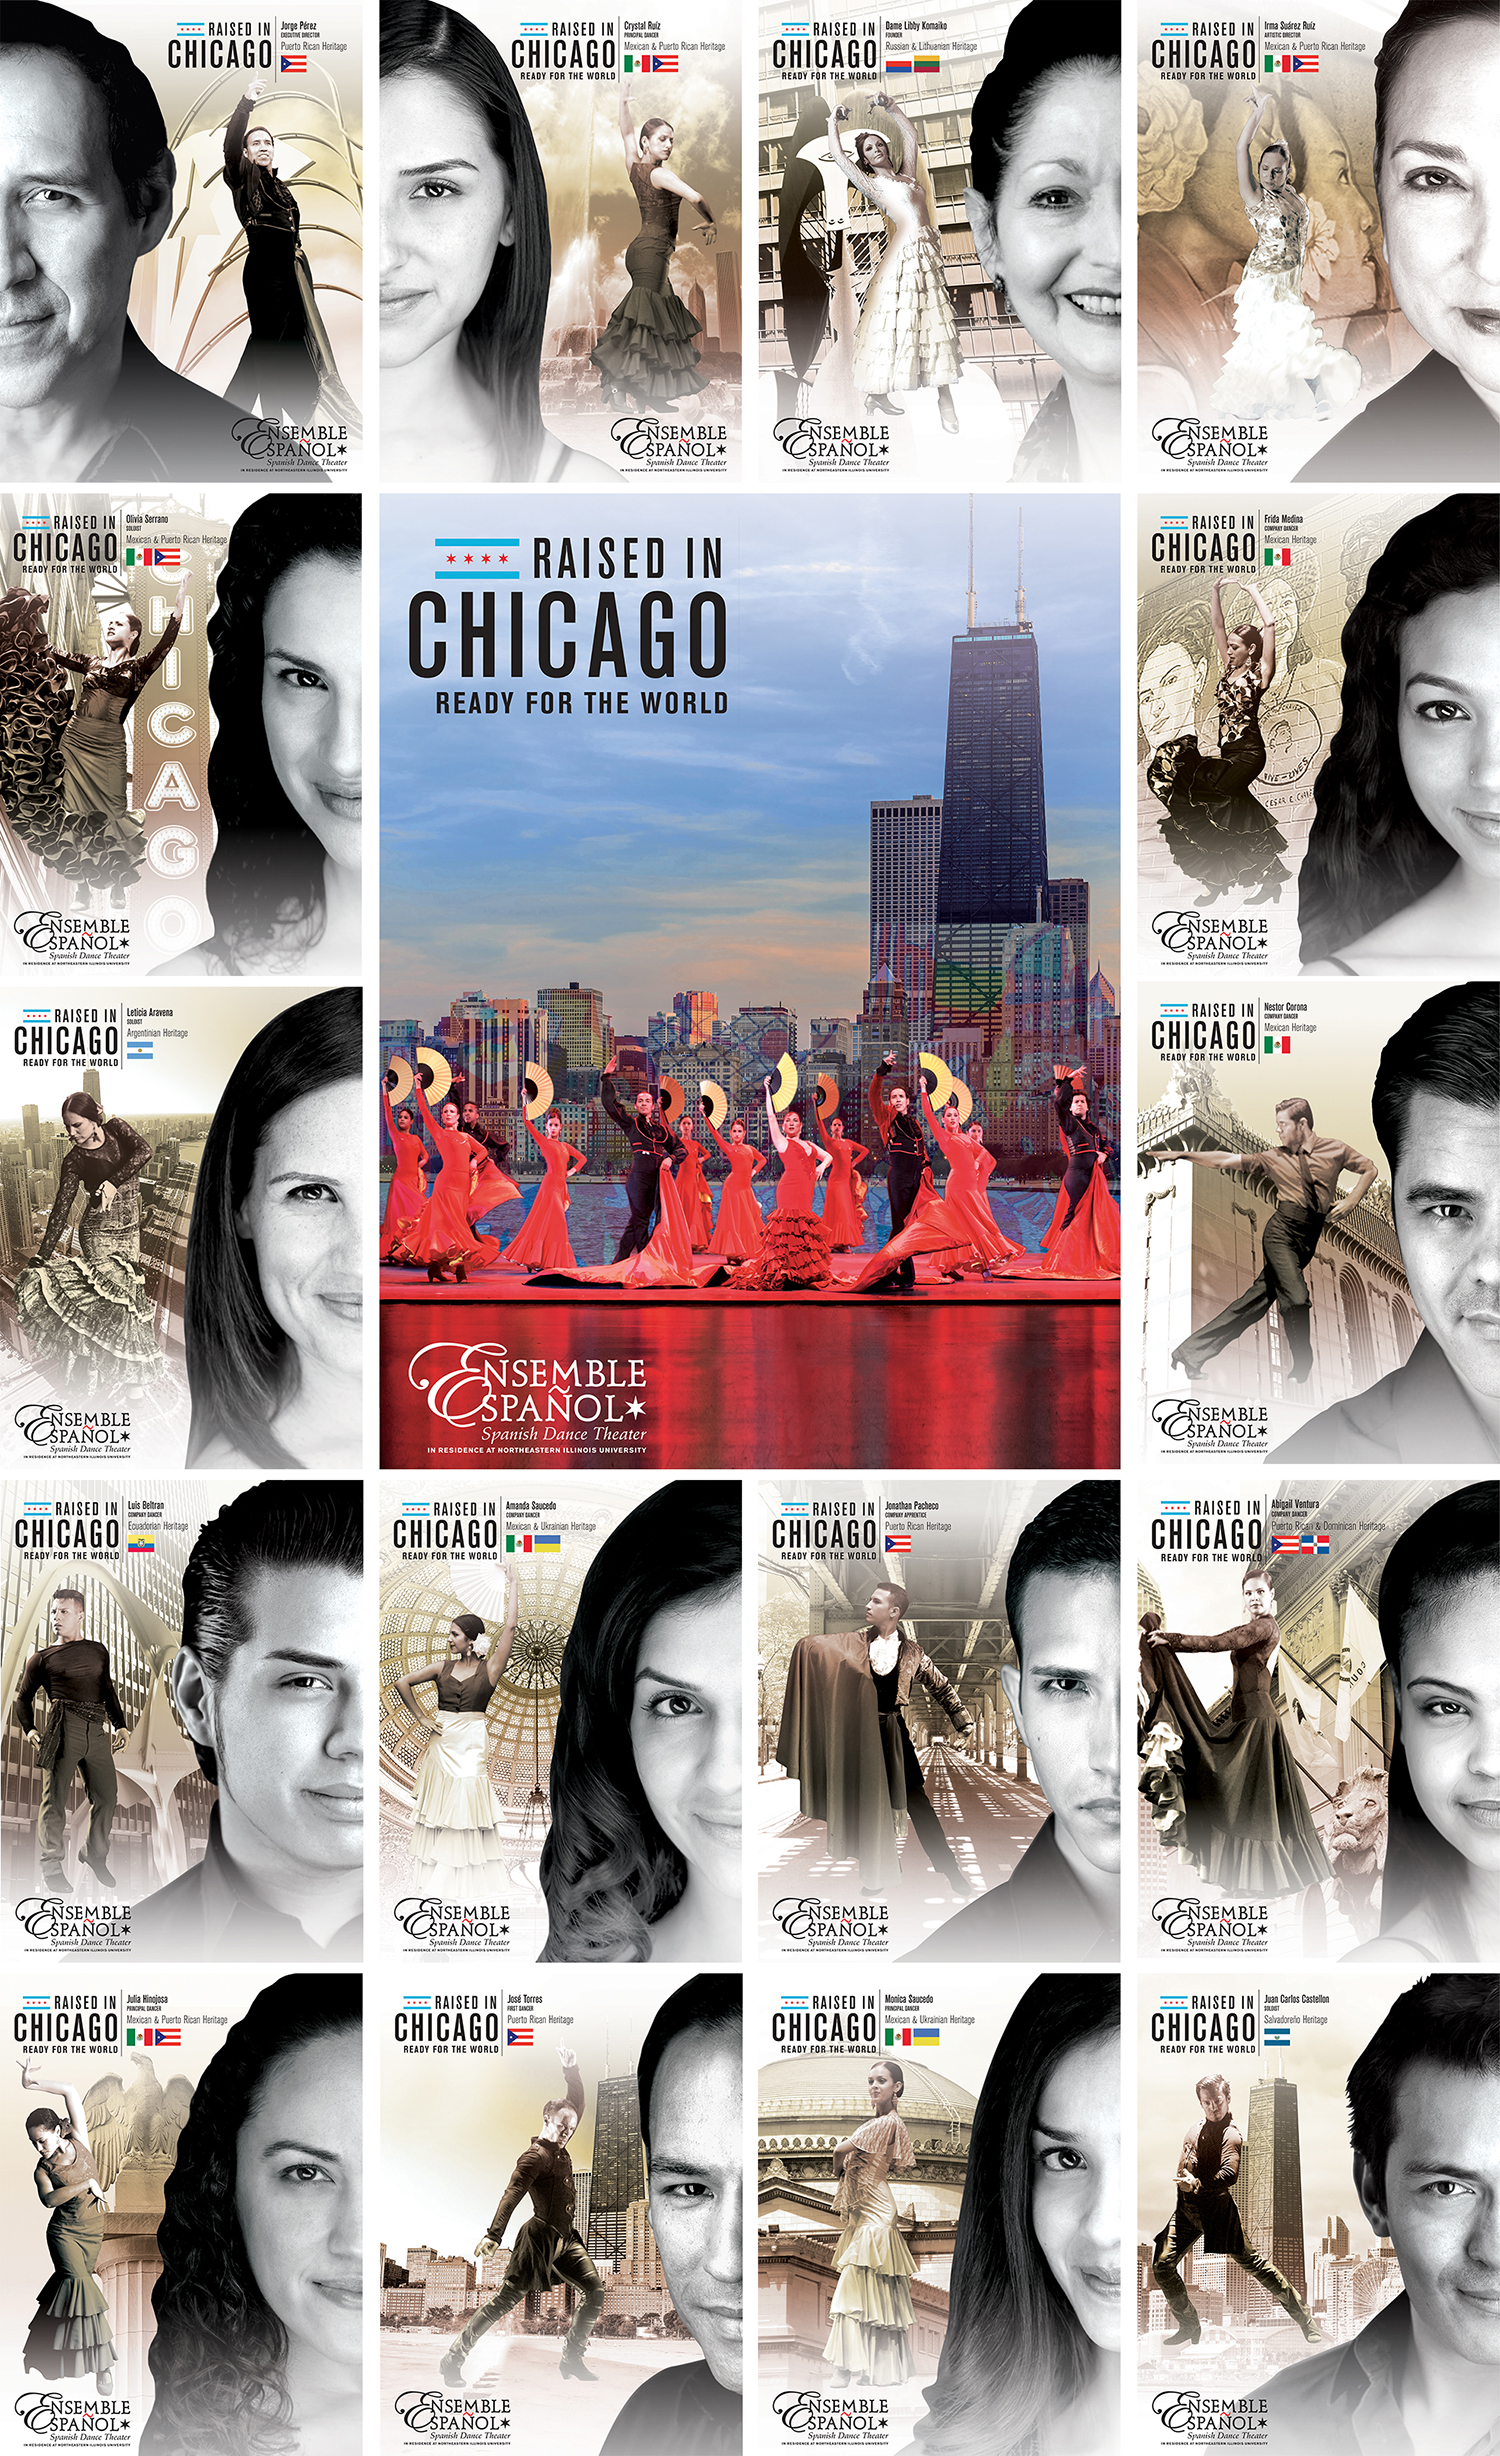 Ensemble Espanol Raised in Chicago Ready for the World Marketing Campaign